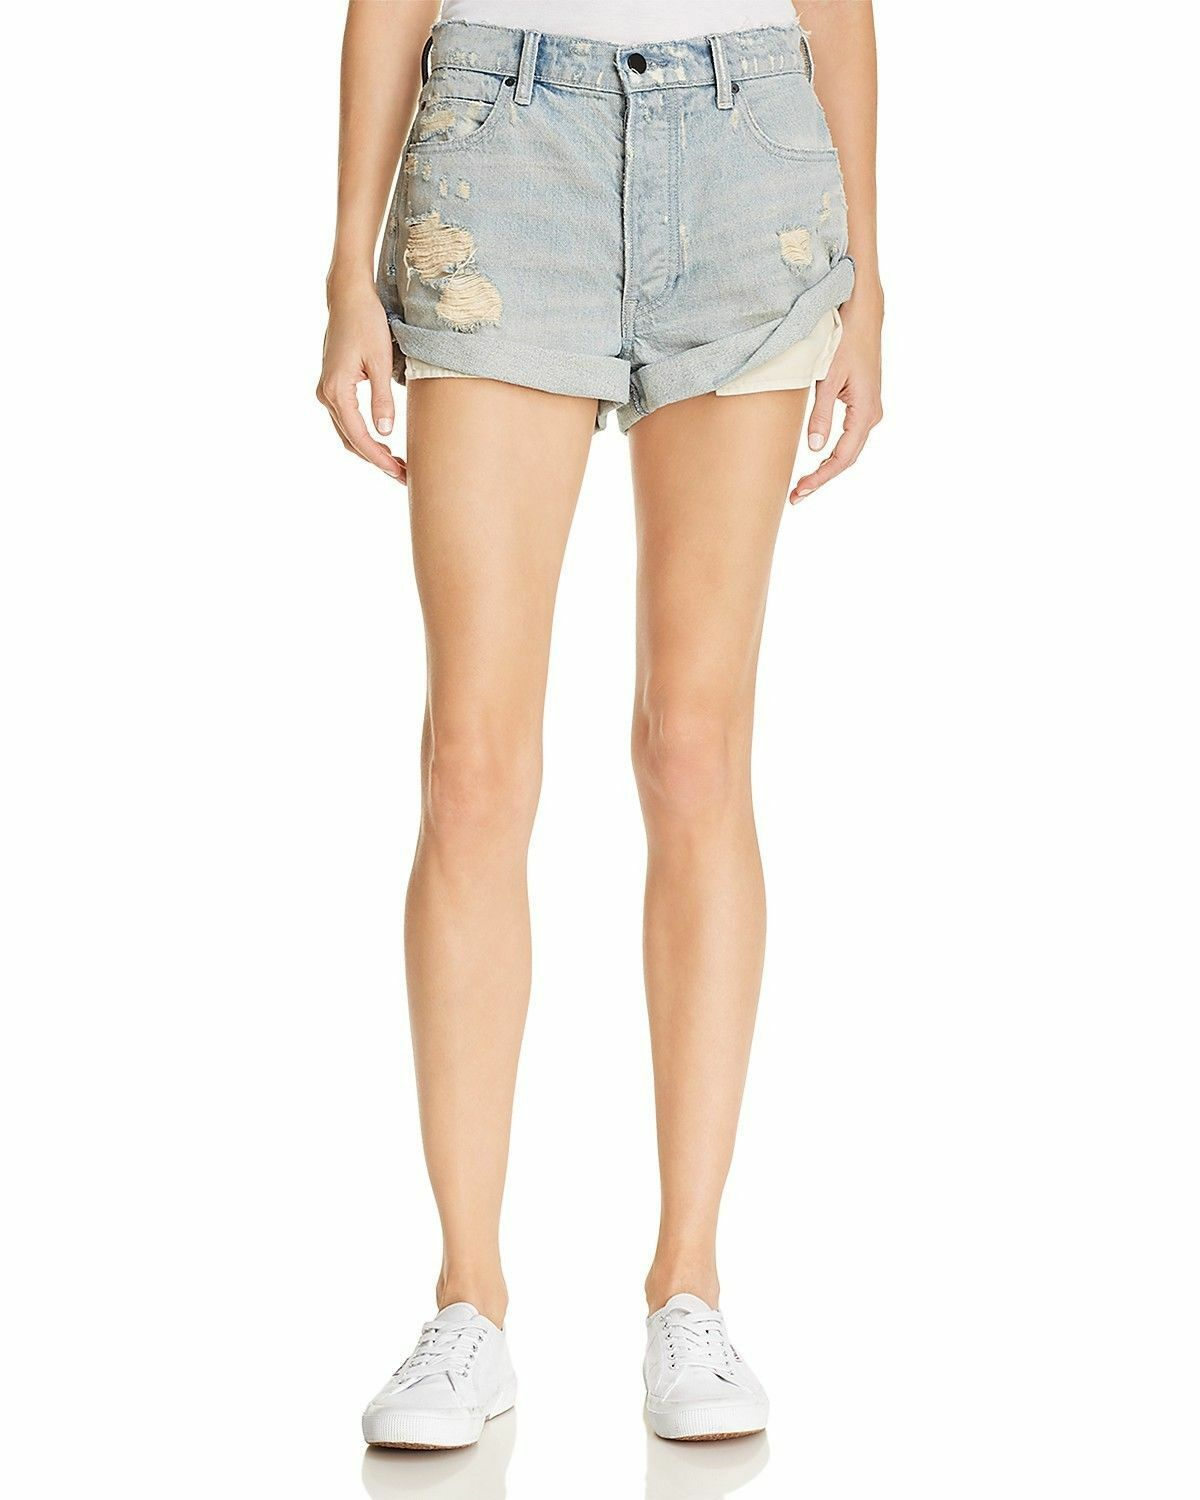 T by Alexander Wang Hike Cuffed Denim Shorts in Vintage Bleach Size 27 Destroyed